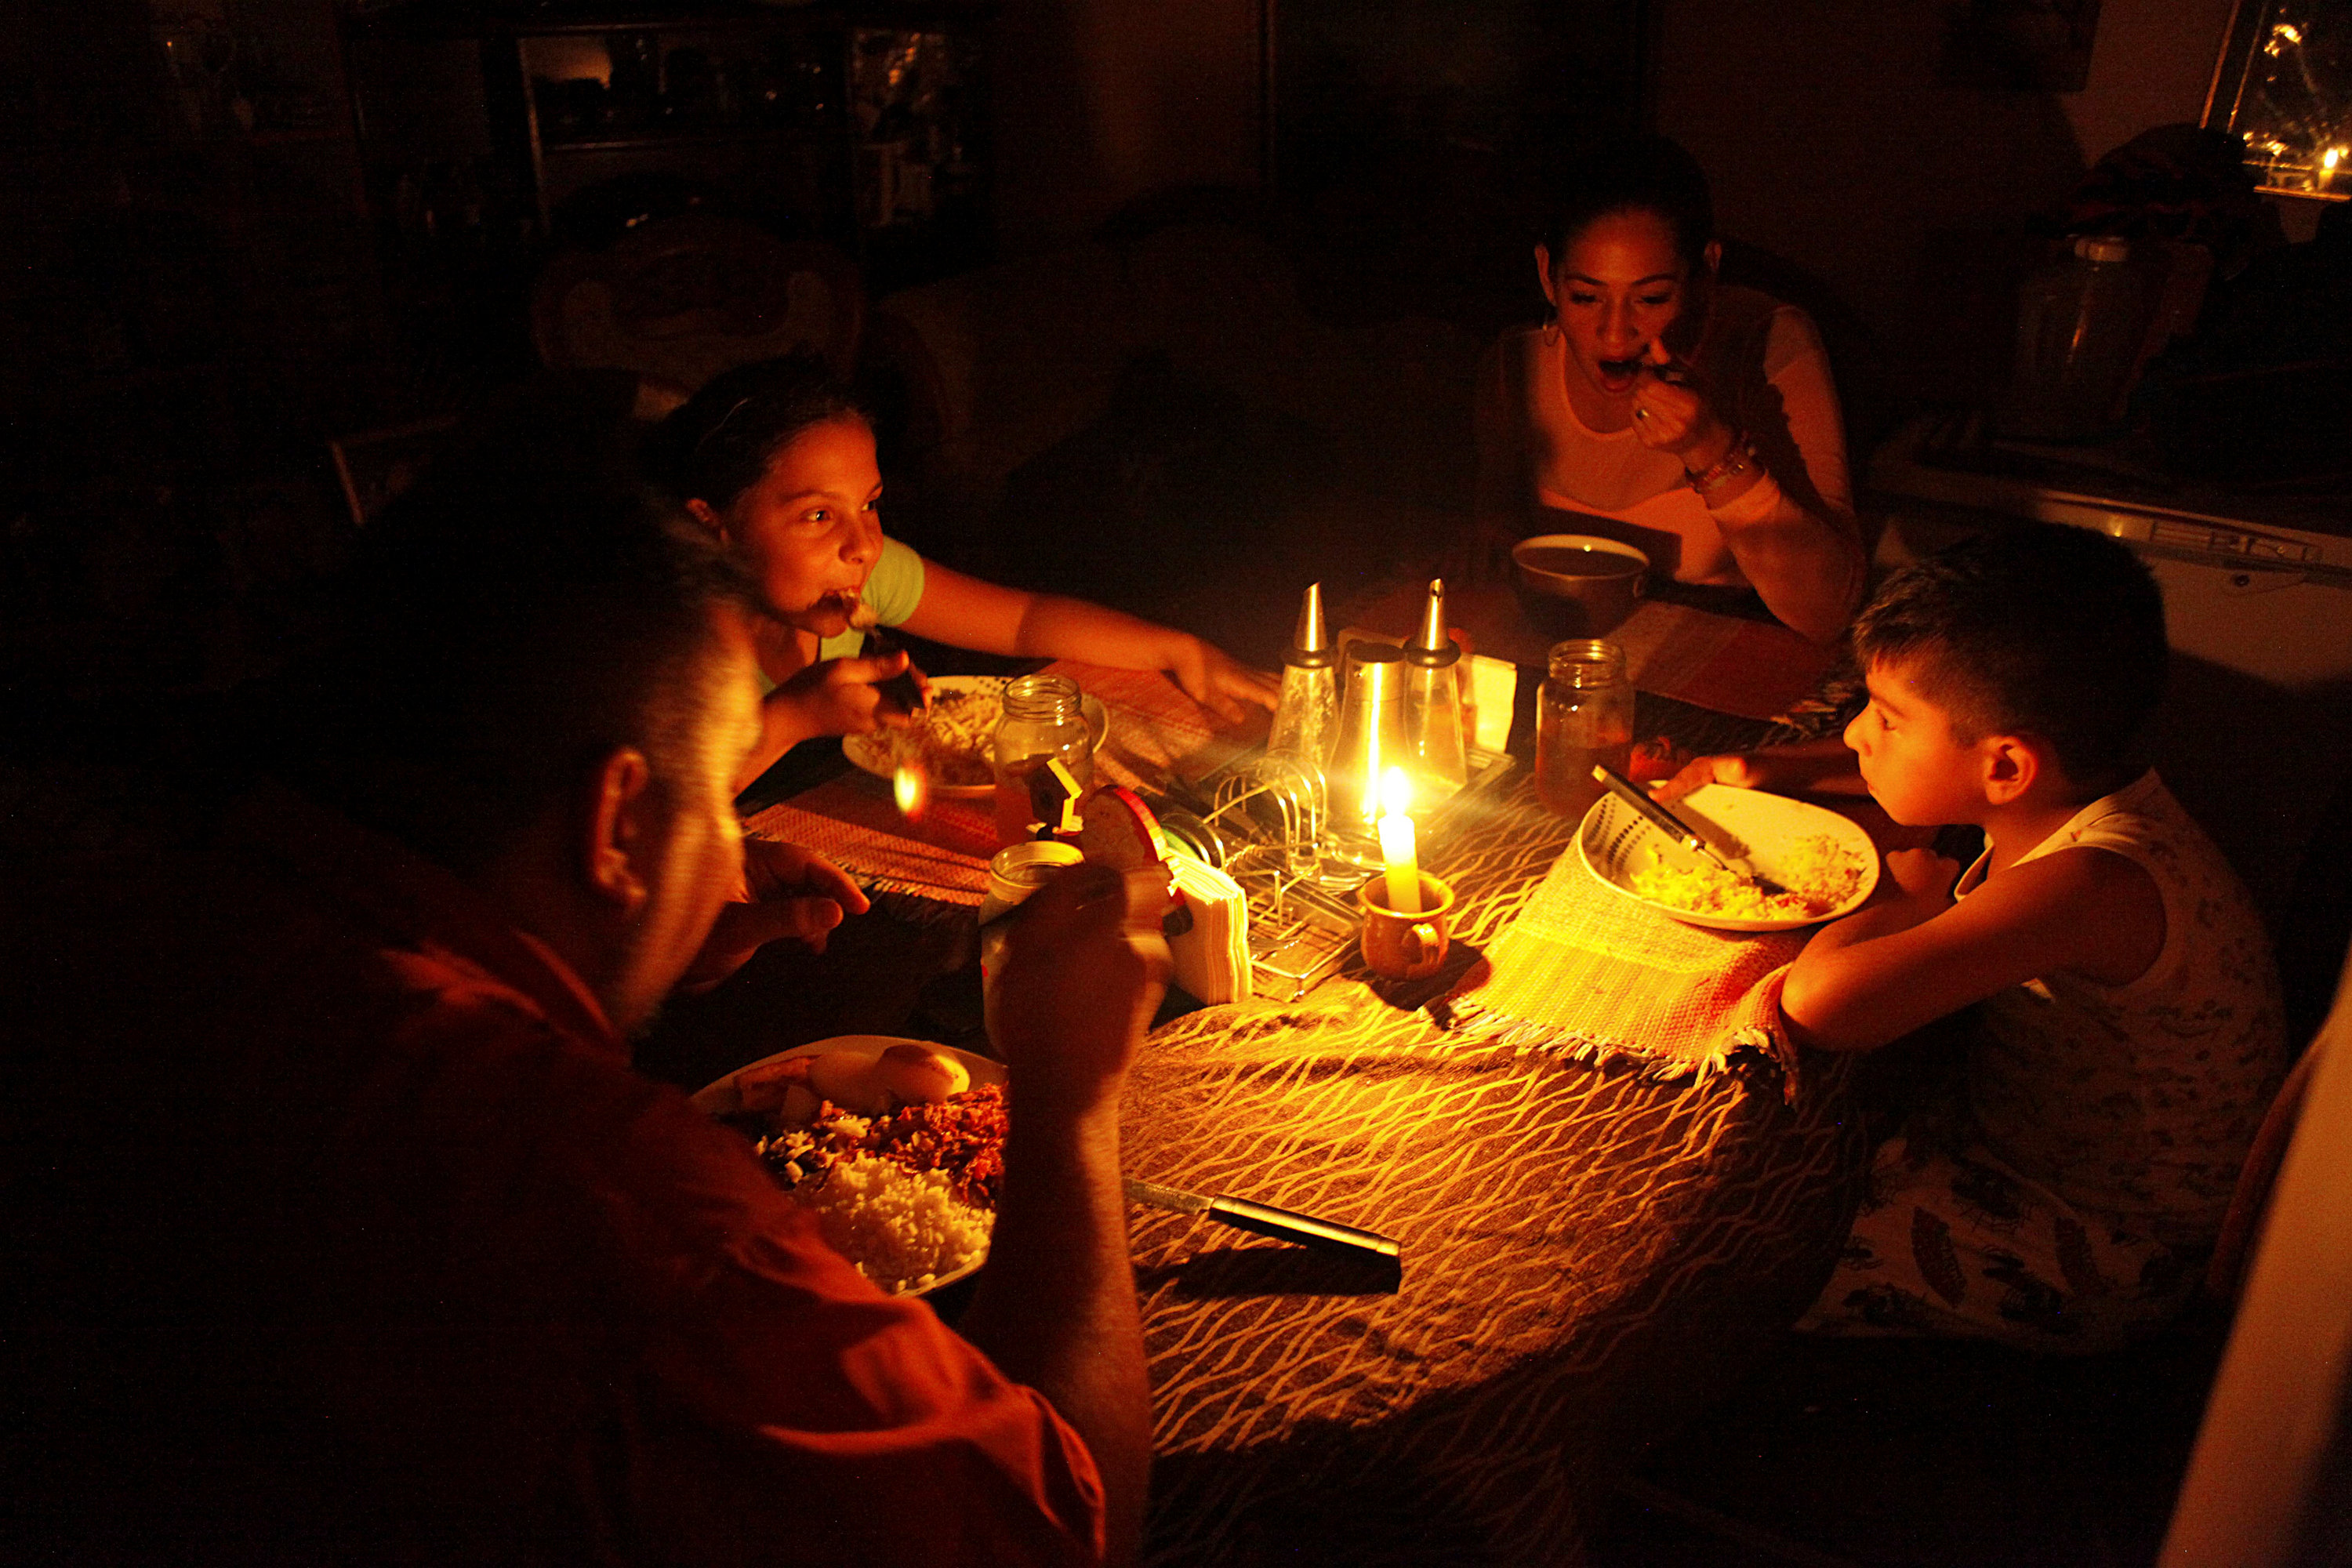 Lisney Albornoz (2nd R) and her family use a candle to illuminate the table while they dine, during a blackout in San Cristobal, Venezuela March 14, 2018. Picture taken March 14, 2018. REUTERS/Carlos Eduardo Ramirez